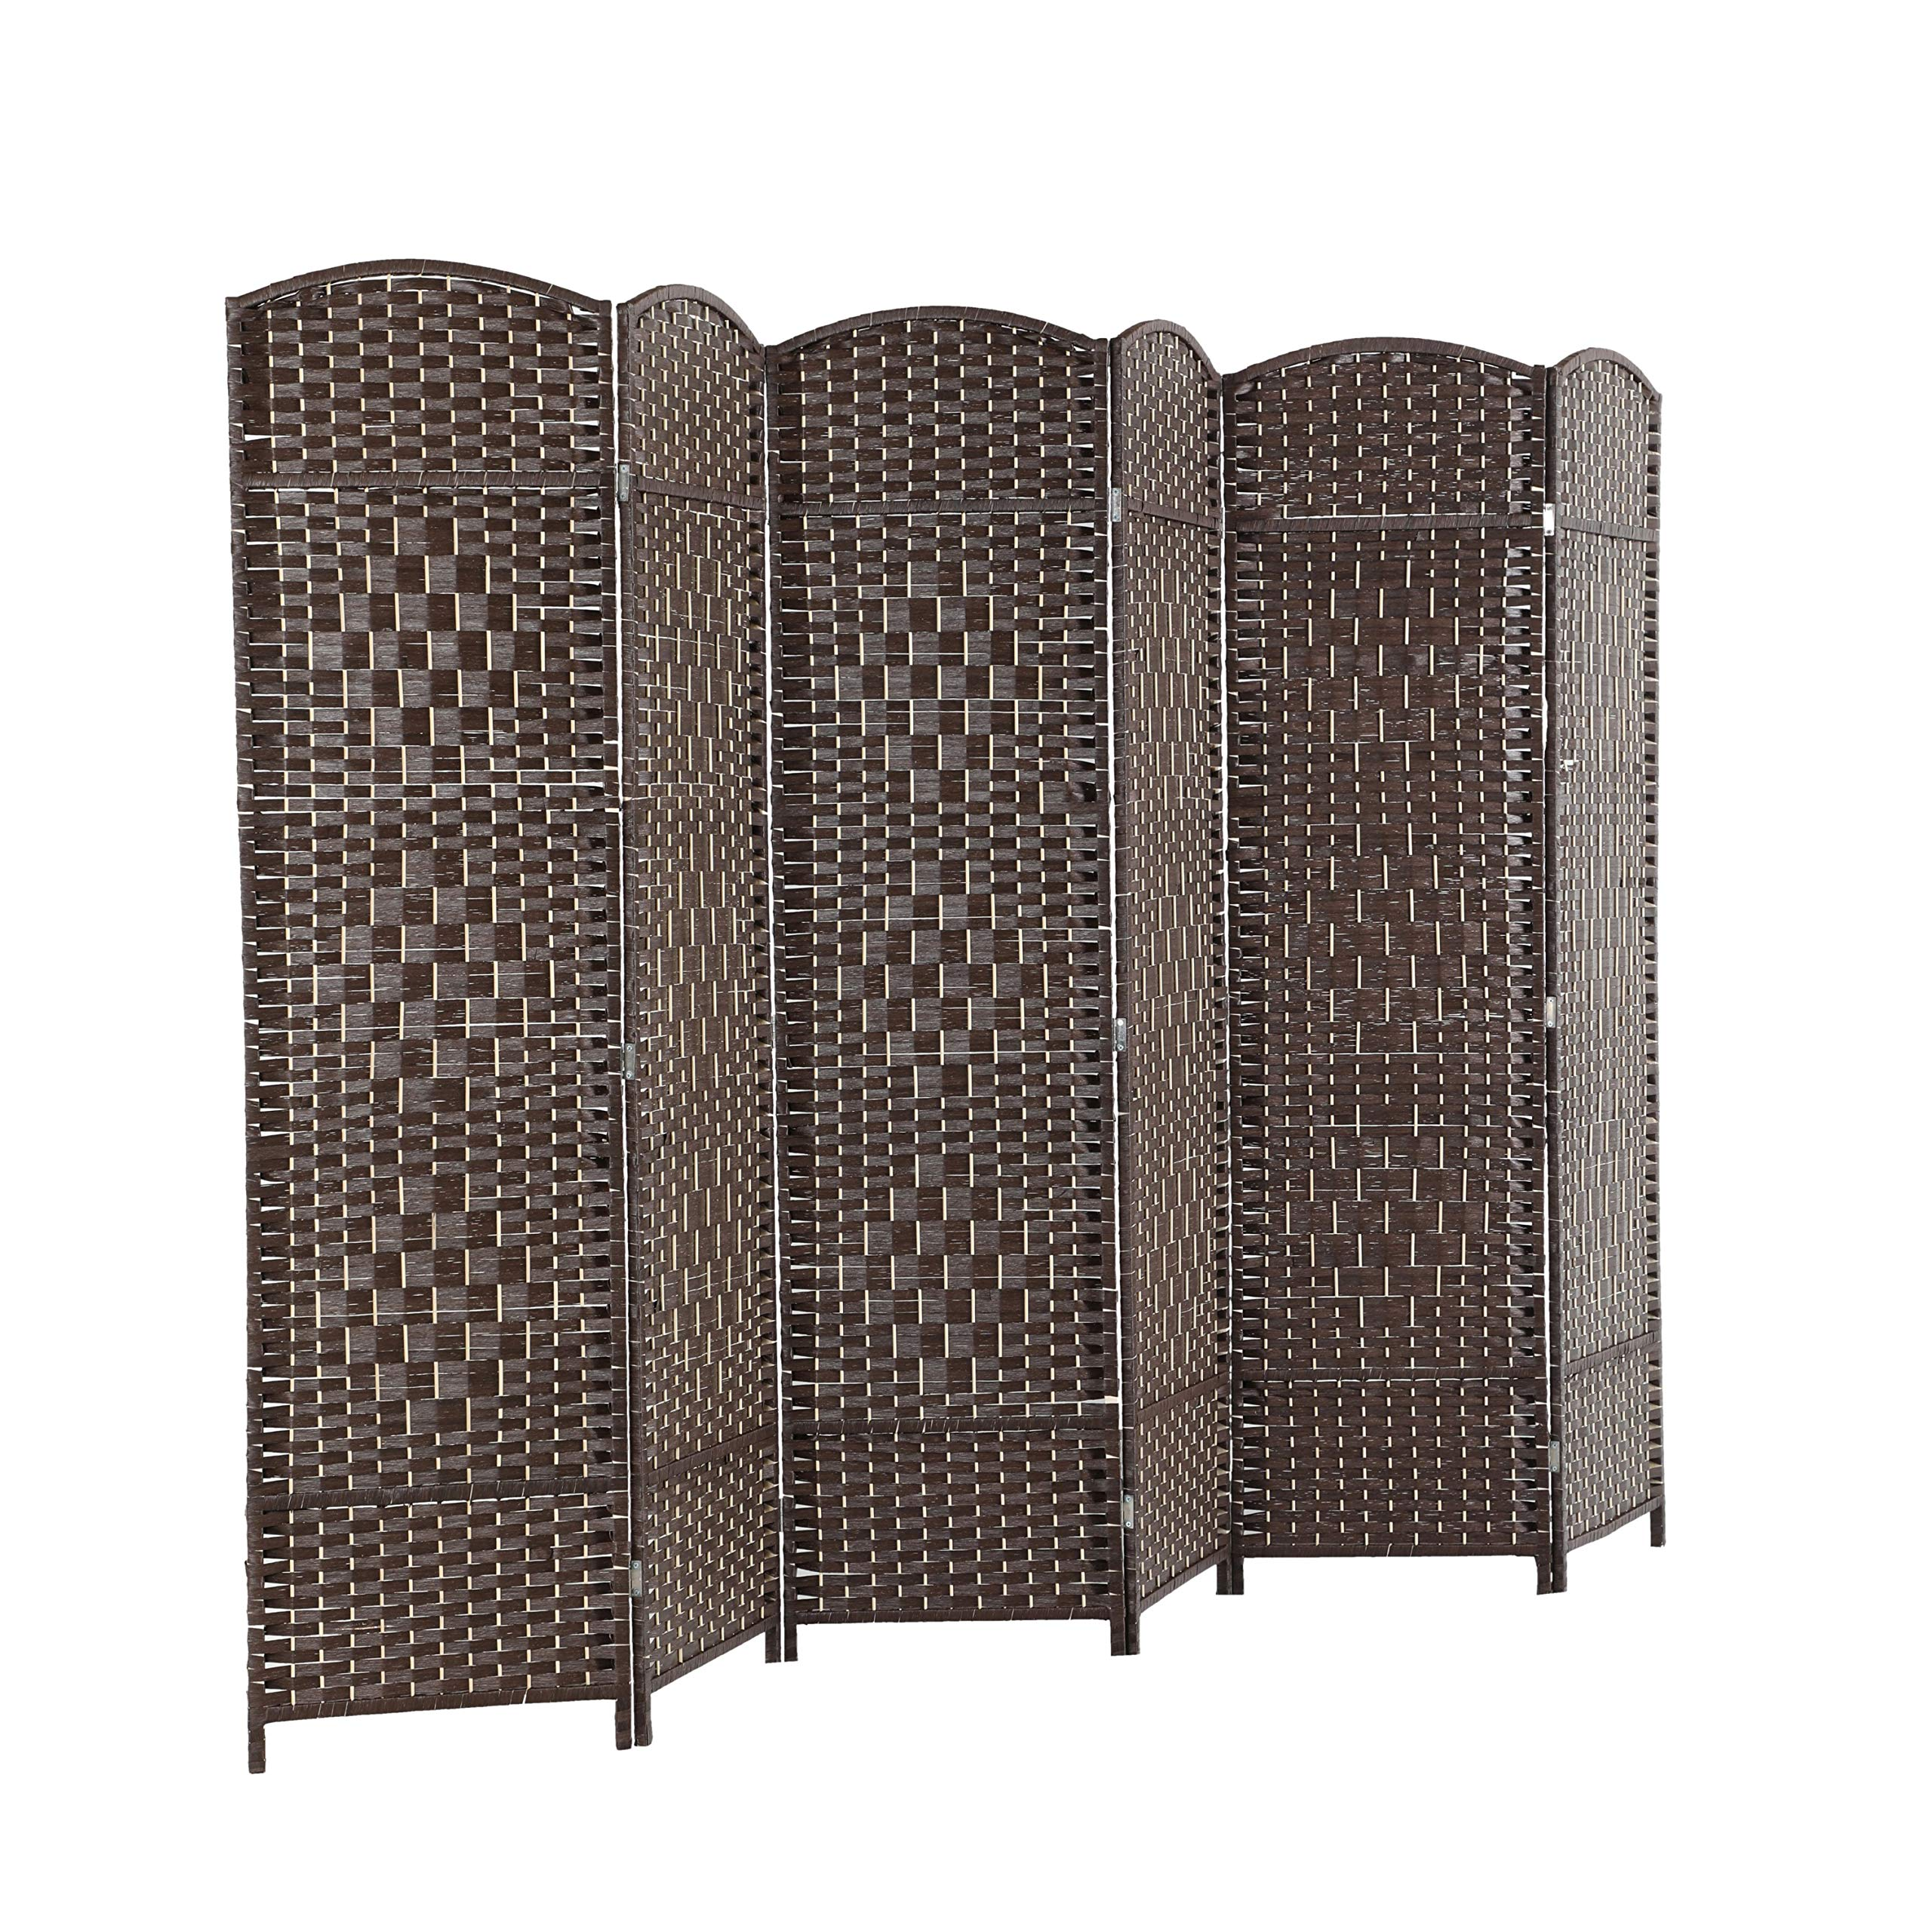 ALPHA HOME 6 Panel Room Divider - 6 FT Tall Extra-Wide Handcrafted Weave Wood Framed Folding Privacy Screen Diamond Pattern, Dark Brown by ALPHA HOME